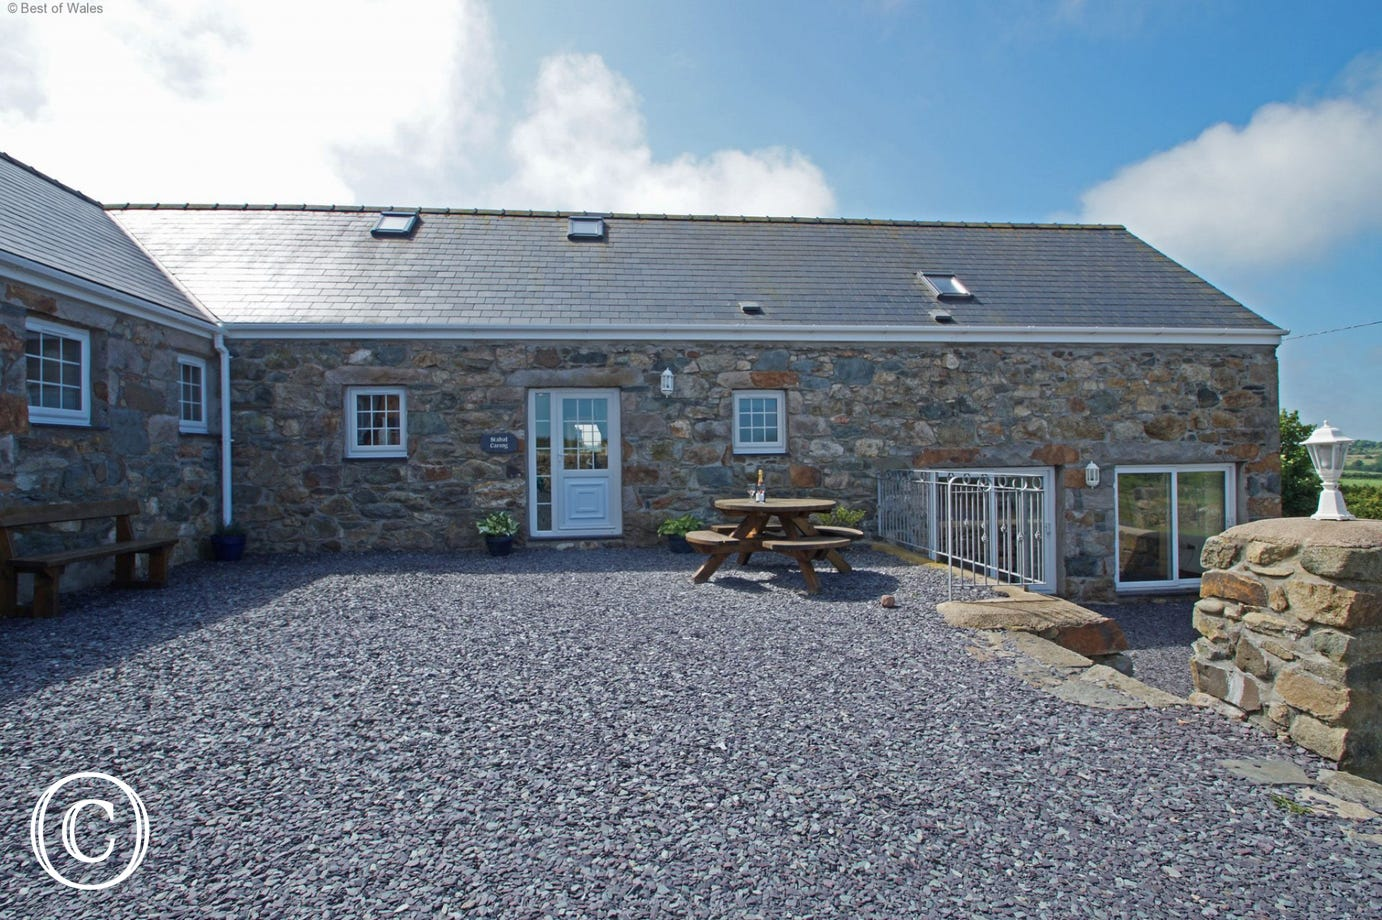 Ideal for get-togethers: large 5 star holiday cottage, Llyn Peninsula